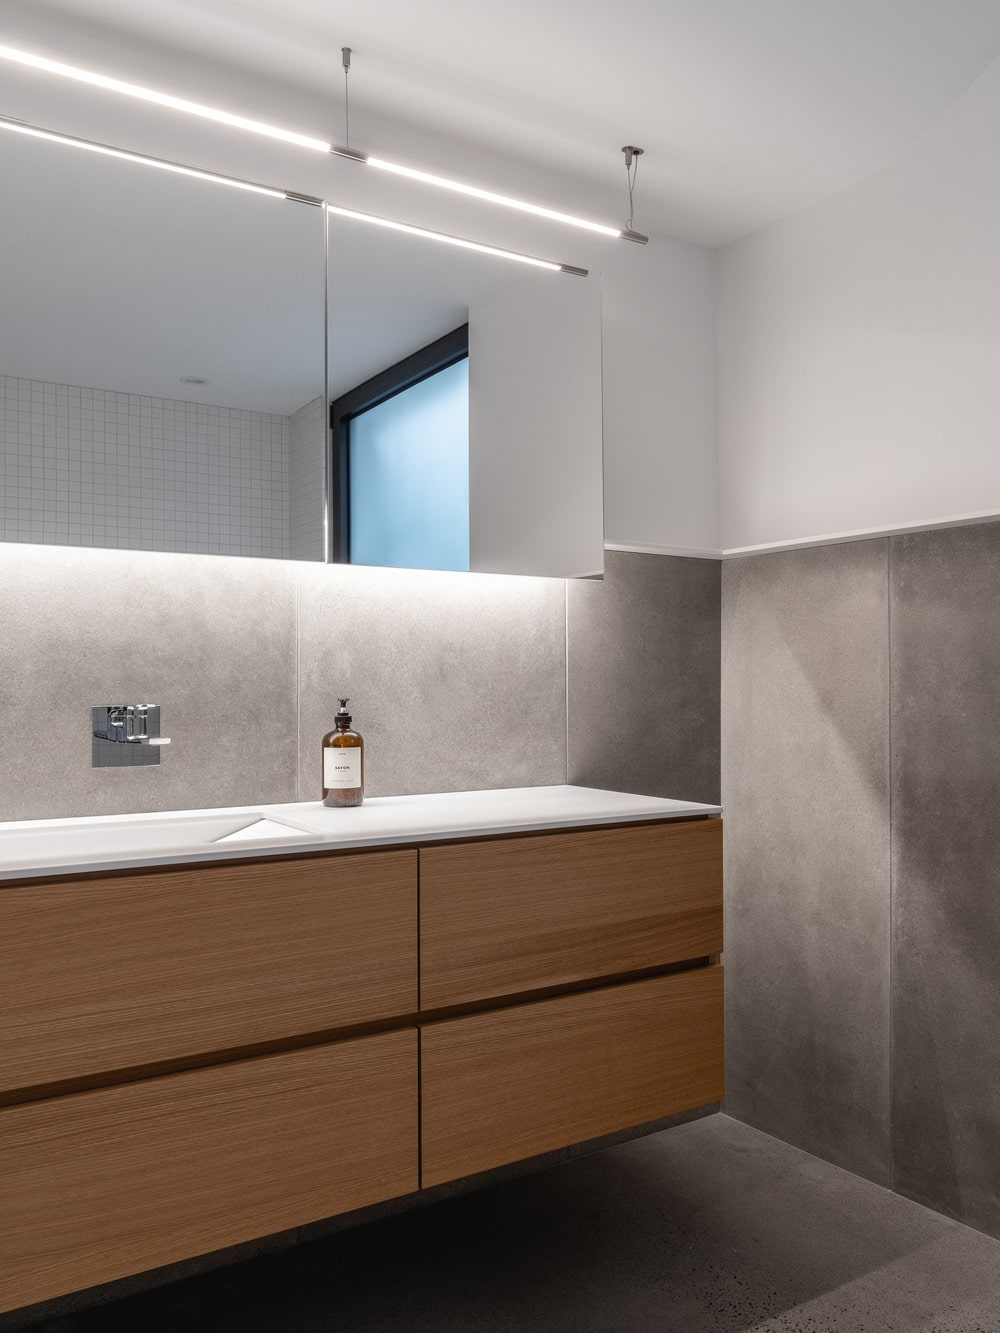 The vanity of the bathroom has bright walls and modern lighting.